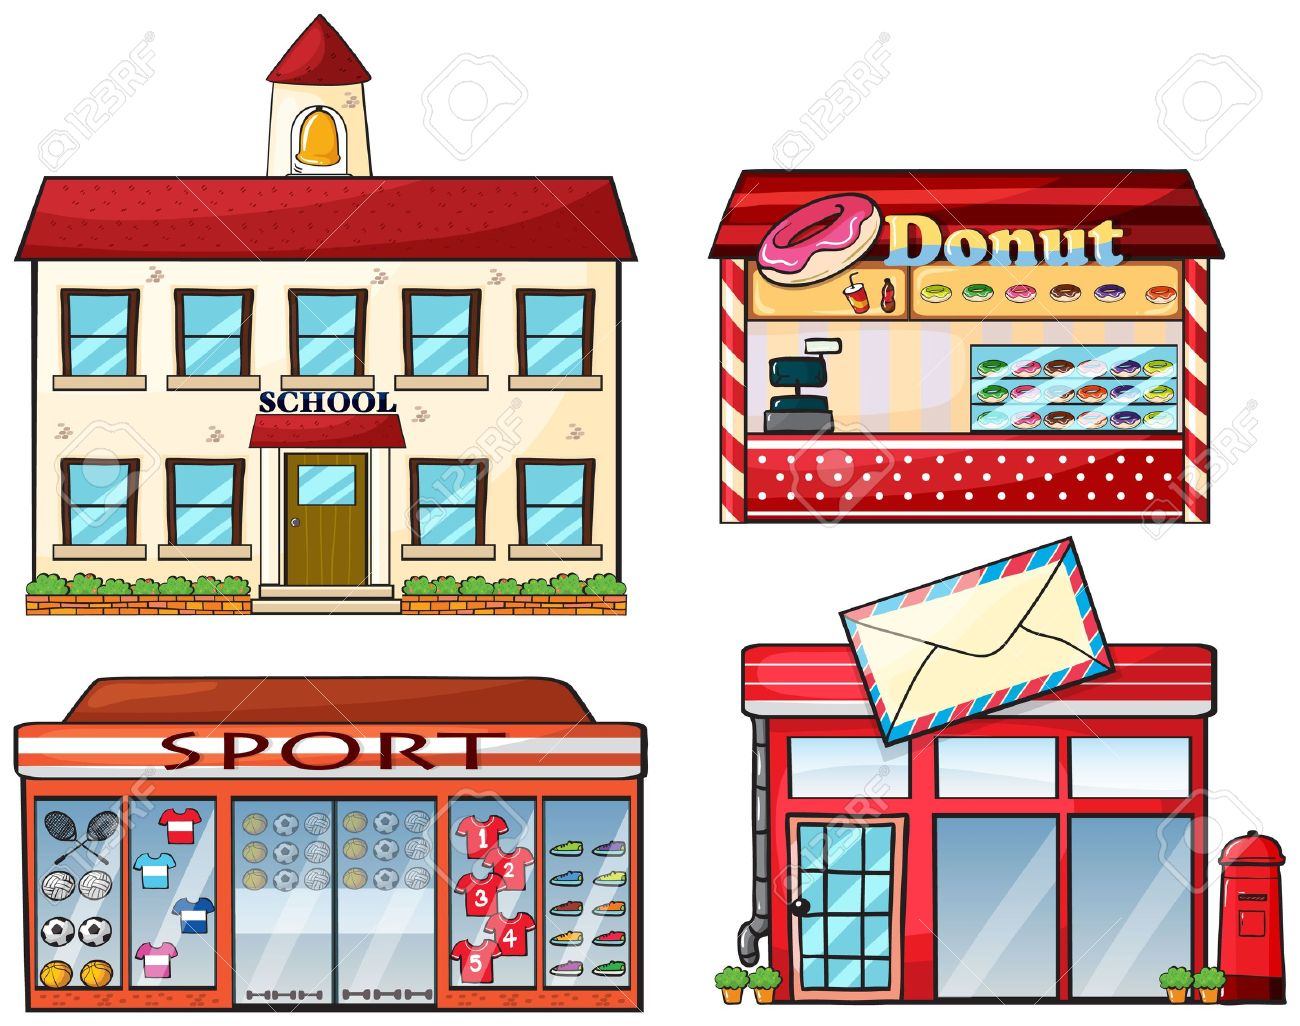 Store Doors Clipart 13,035 office door stock illustrations, cliparts and royalty free